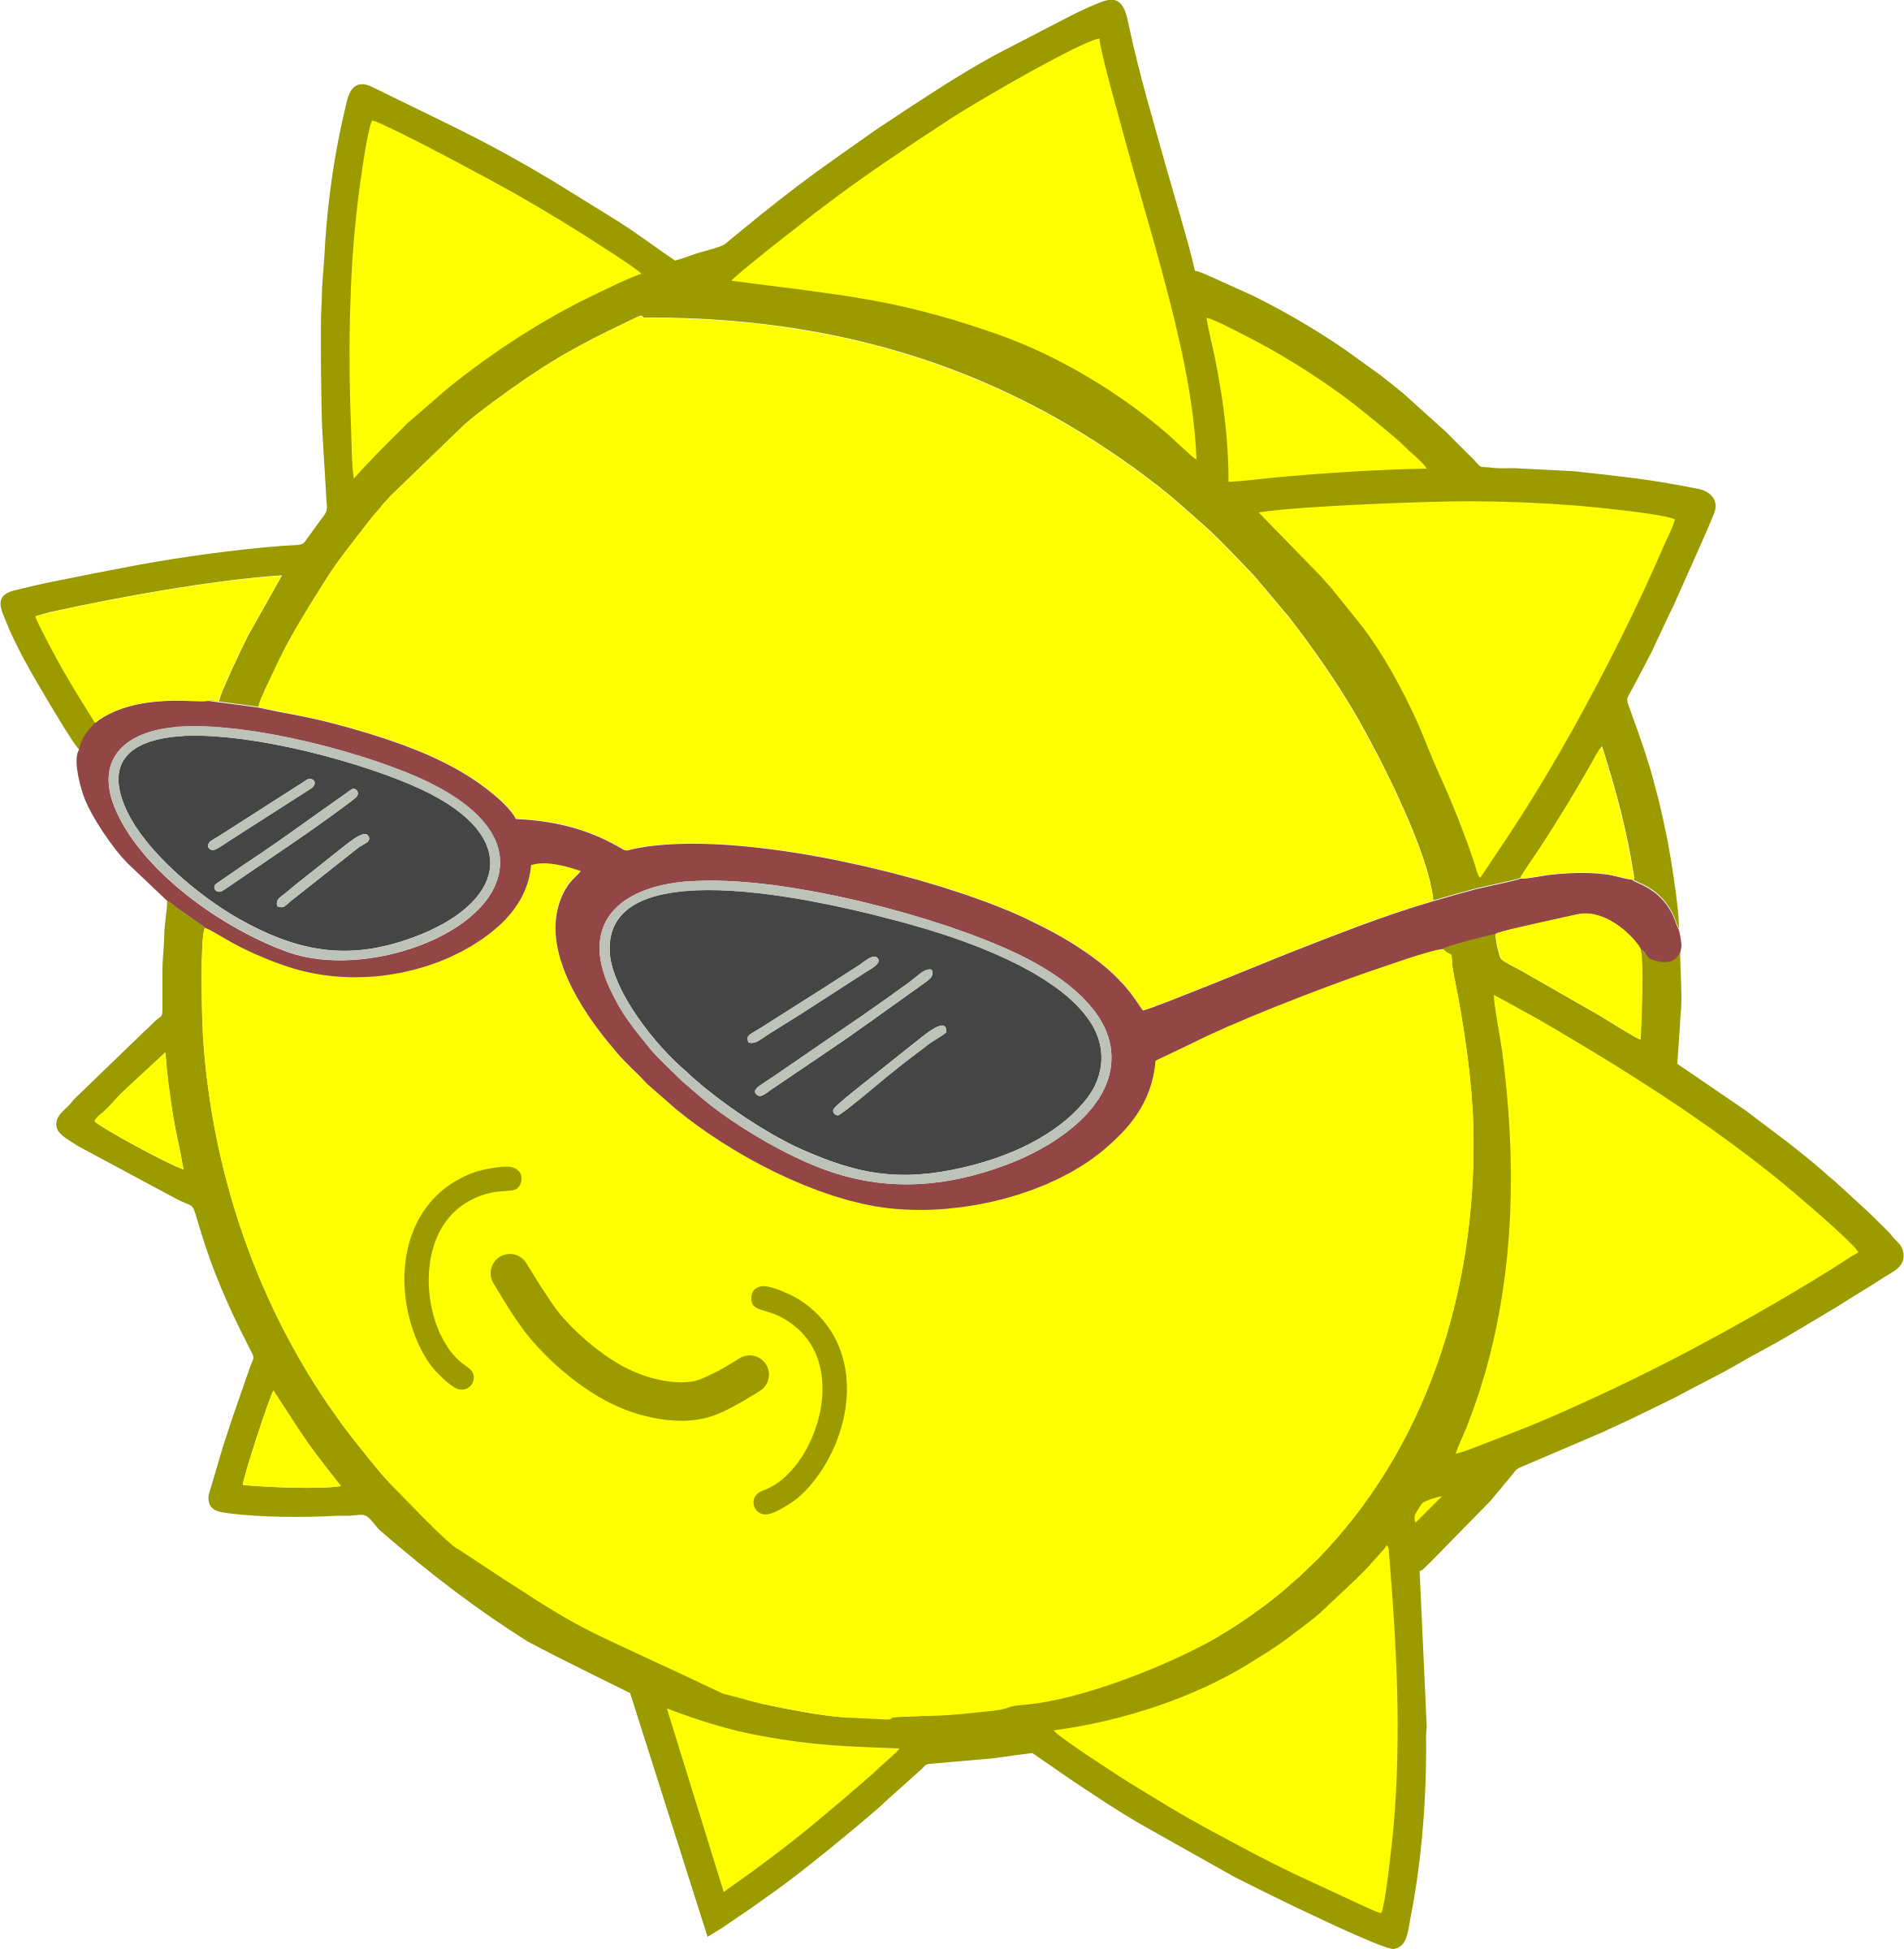 Cool sun clipart jpg royalty free library Clipart - Cool sun jpg royalty free library